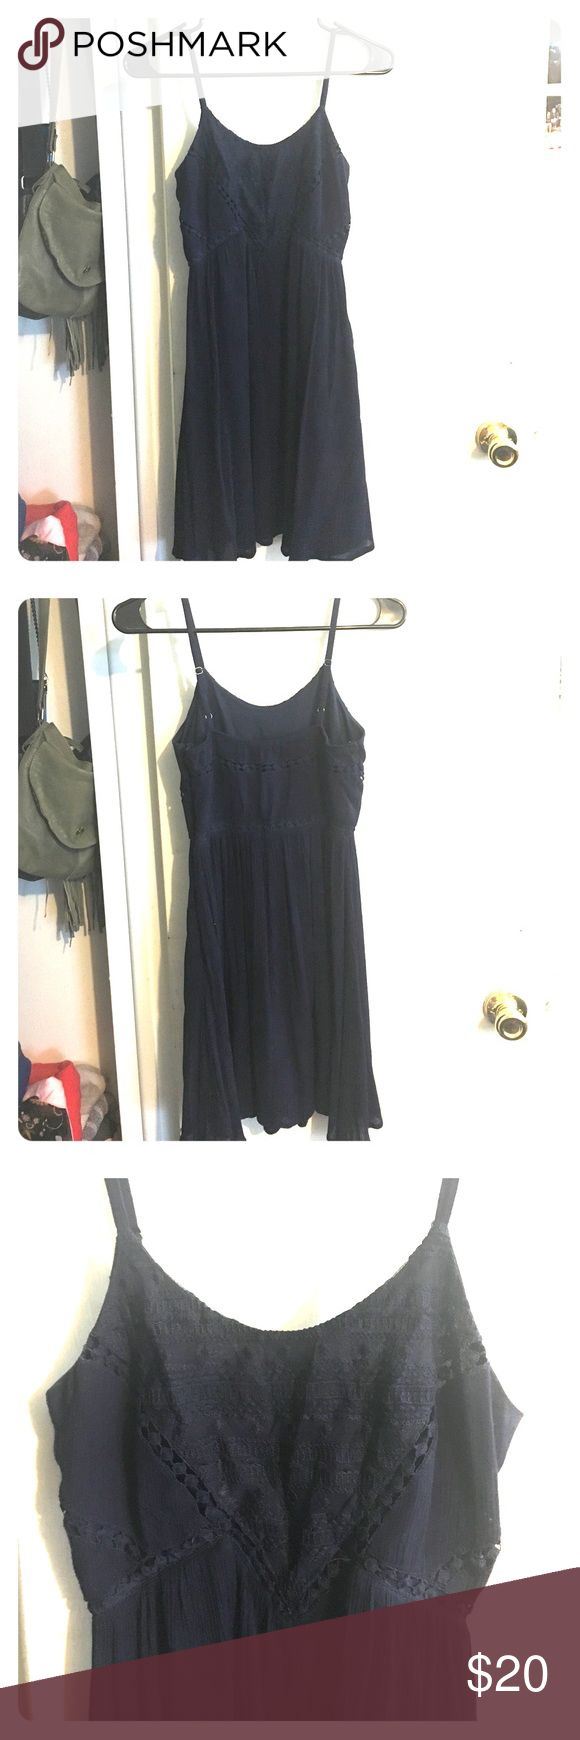 Navy blue dress More formal than a sundress but less formal than a cocktail dress. Wore it for sorority recruitment as an example. Has embroidery in the front and is double layered. Worn one time. Lulu's Dresses